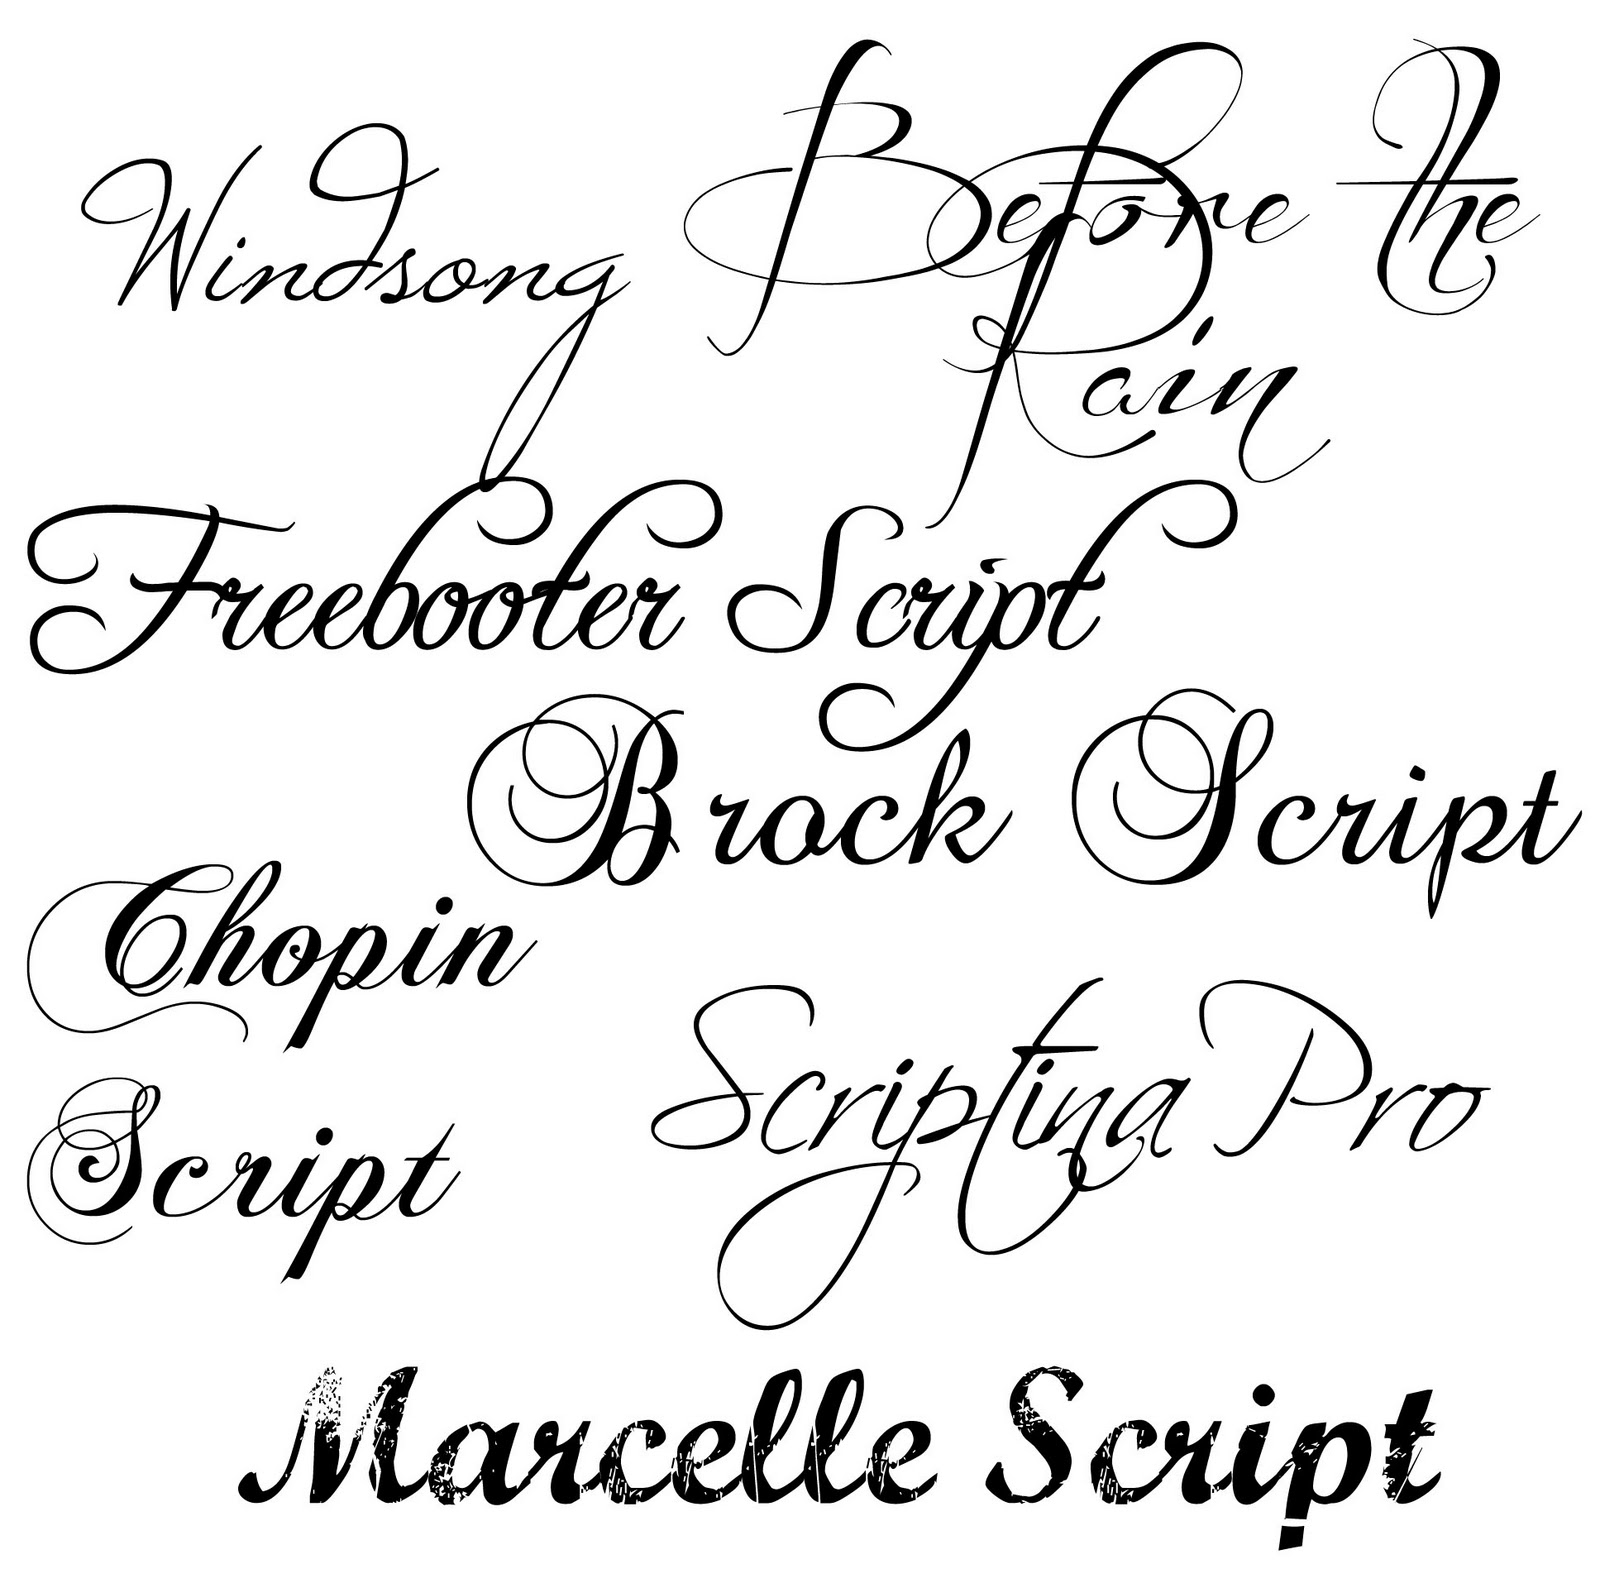 Fonts available to download each individual font click on the link